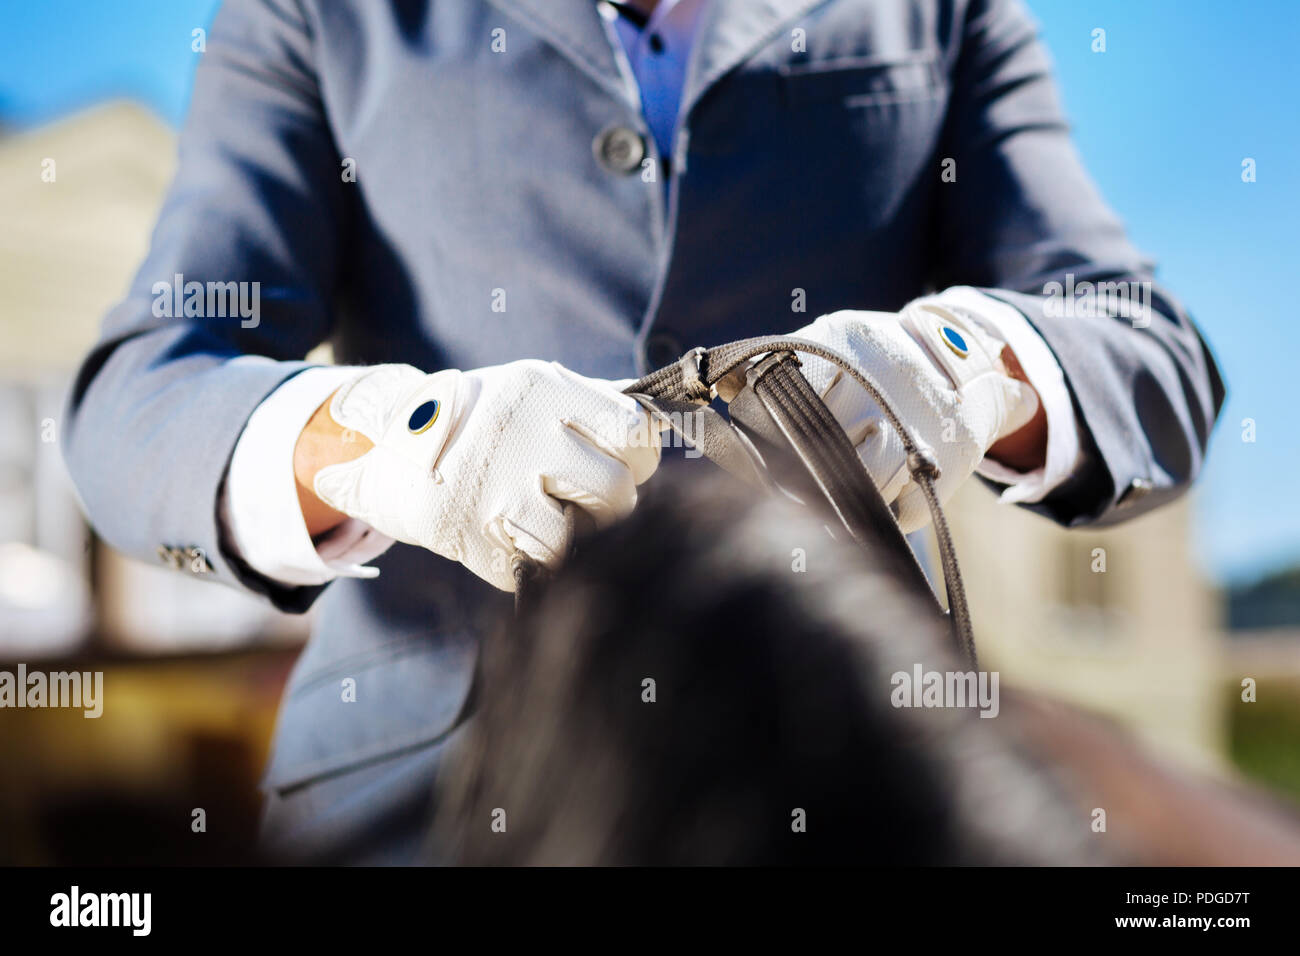 Sportsman wearing blue gloves getting ready for horse riding - Stock Image